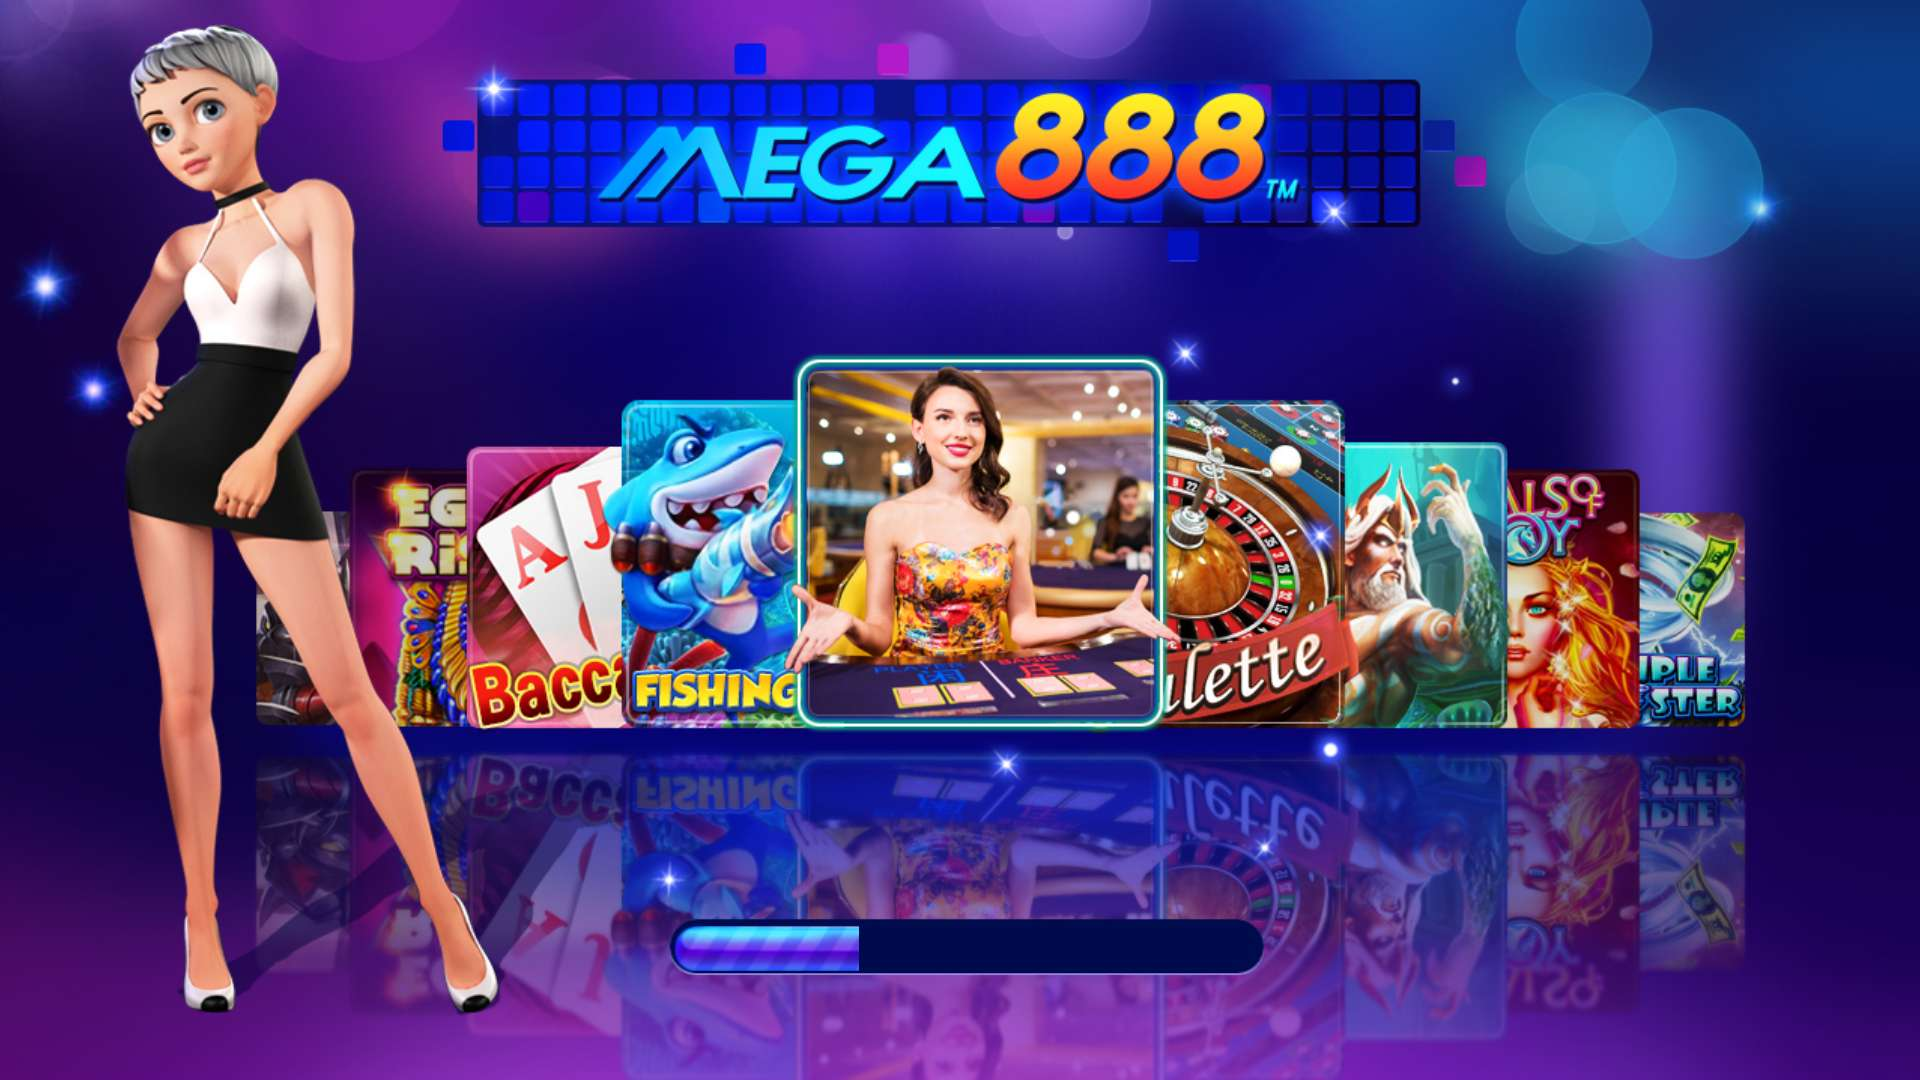 HOW TO GET FREE CREDIT ON MEGA888